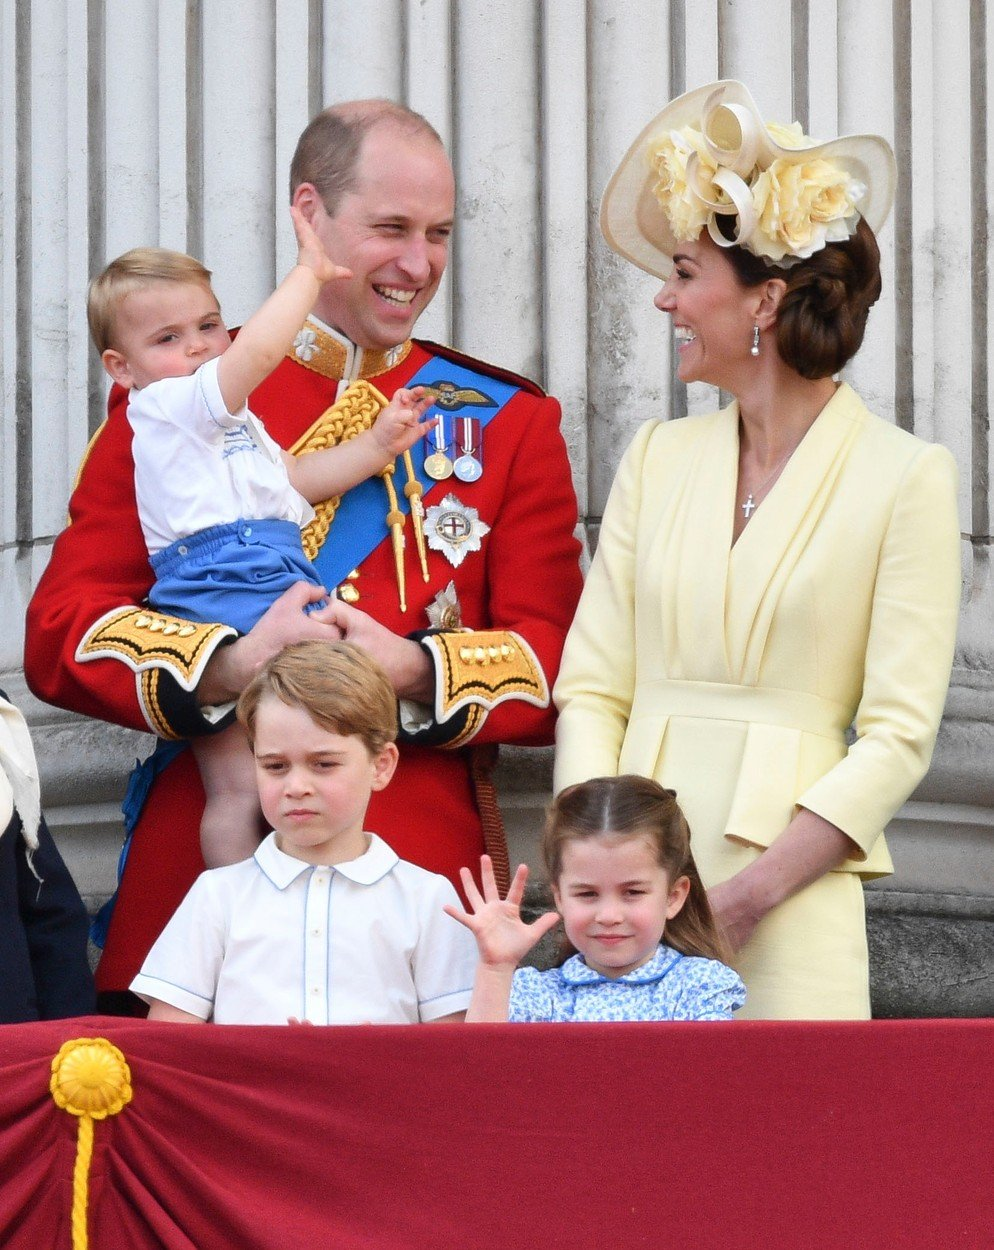 Prince William, Catherine Duchess of Cambridge, Prince Louis, Prince George and Princess Charlotte Trooping the Colour ceremony, London, UK - 08 Jun 2019, Image: 444753550, License: Rights-managed, Restrictions: , Model Release: no, Credit line: Profimedia, TEMP Rex Features